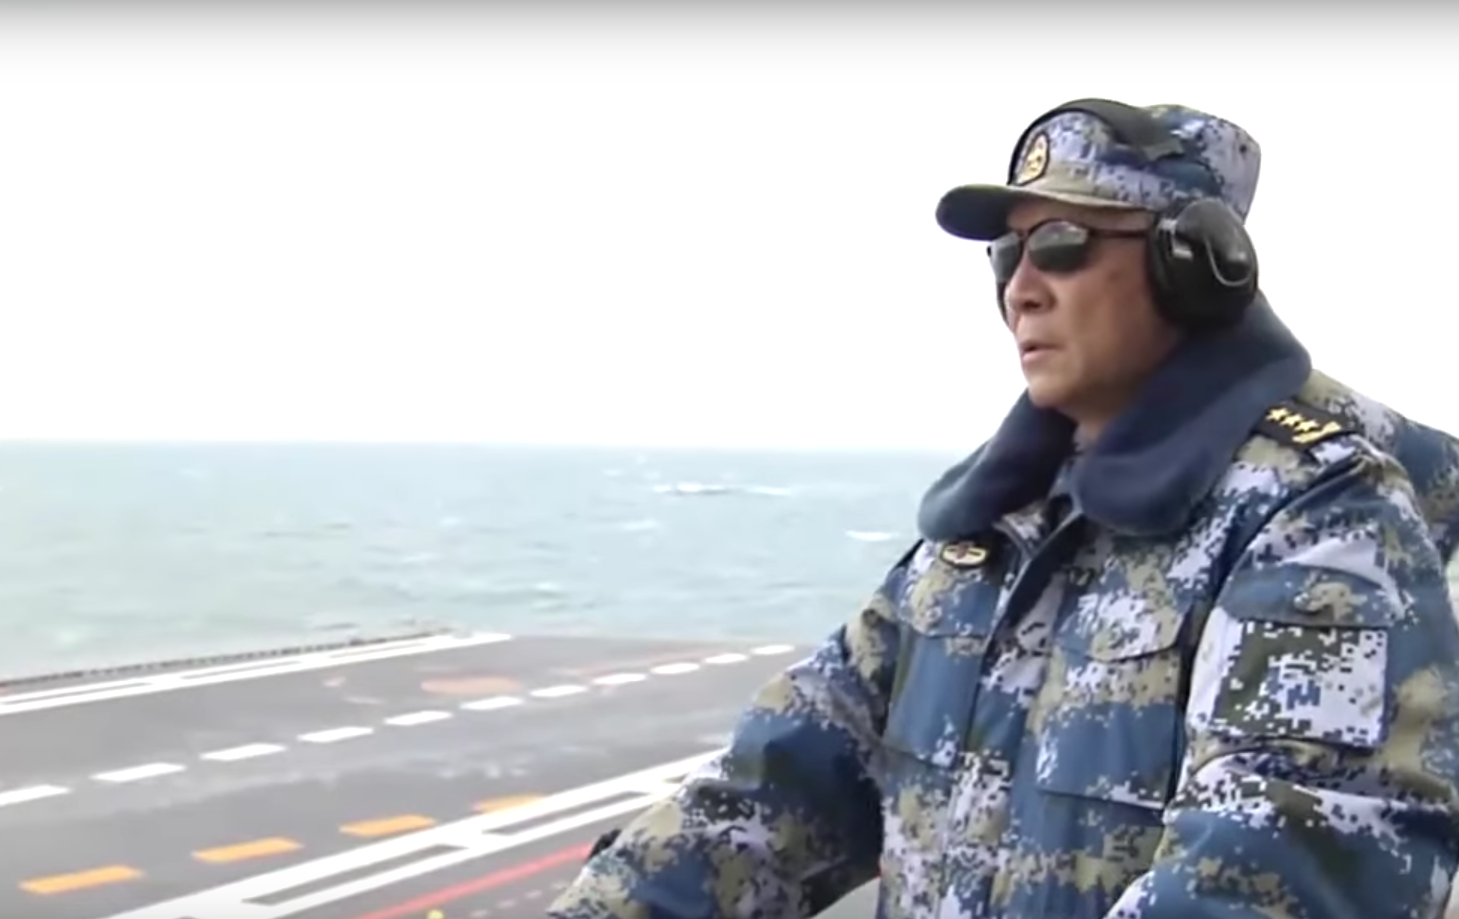 The head of the People's Liberation Army Navy Adm. Wu Shengli on Chinese carrier Liaoning